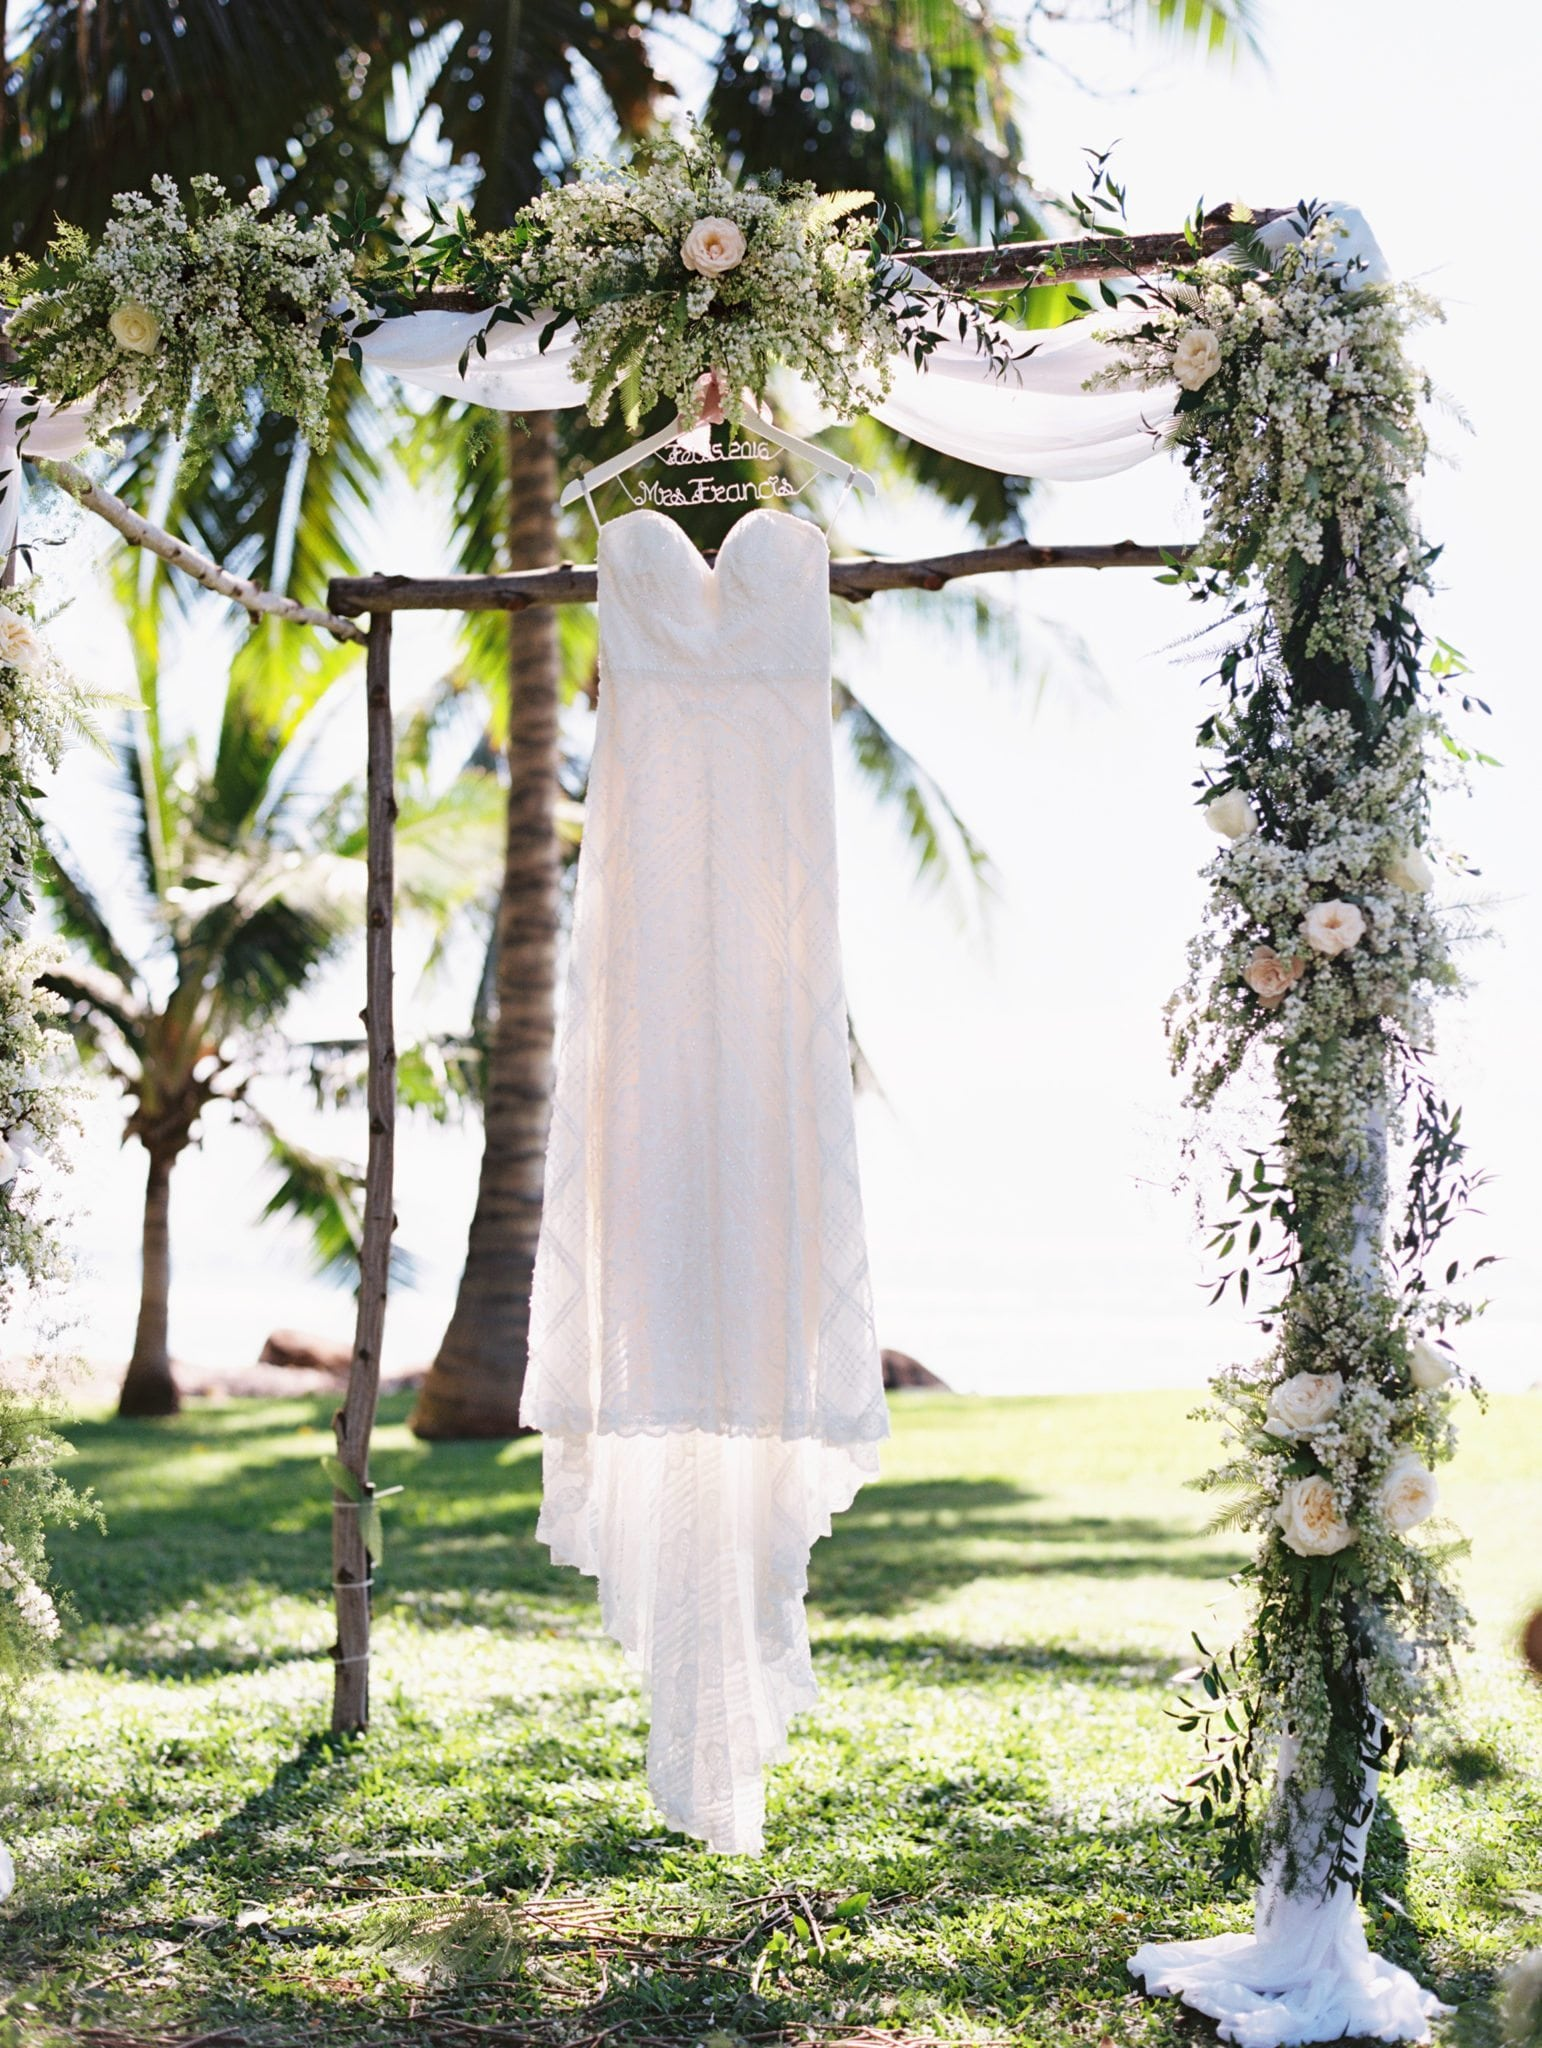 Maui's Angels Weddings - Destination wedding planner blog hero image